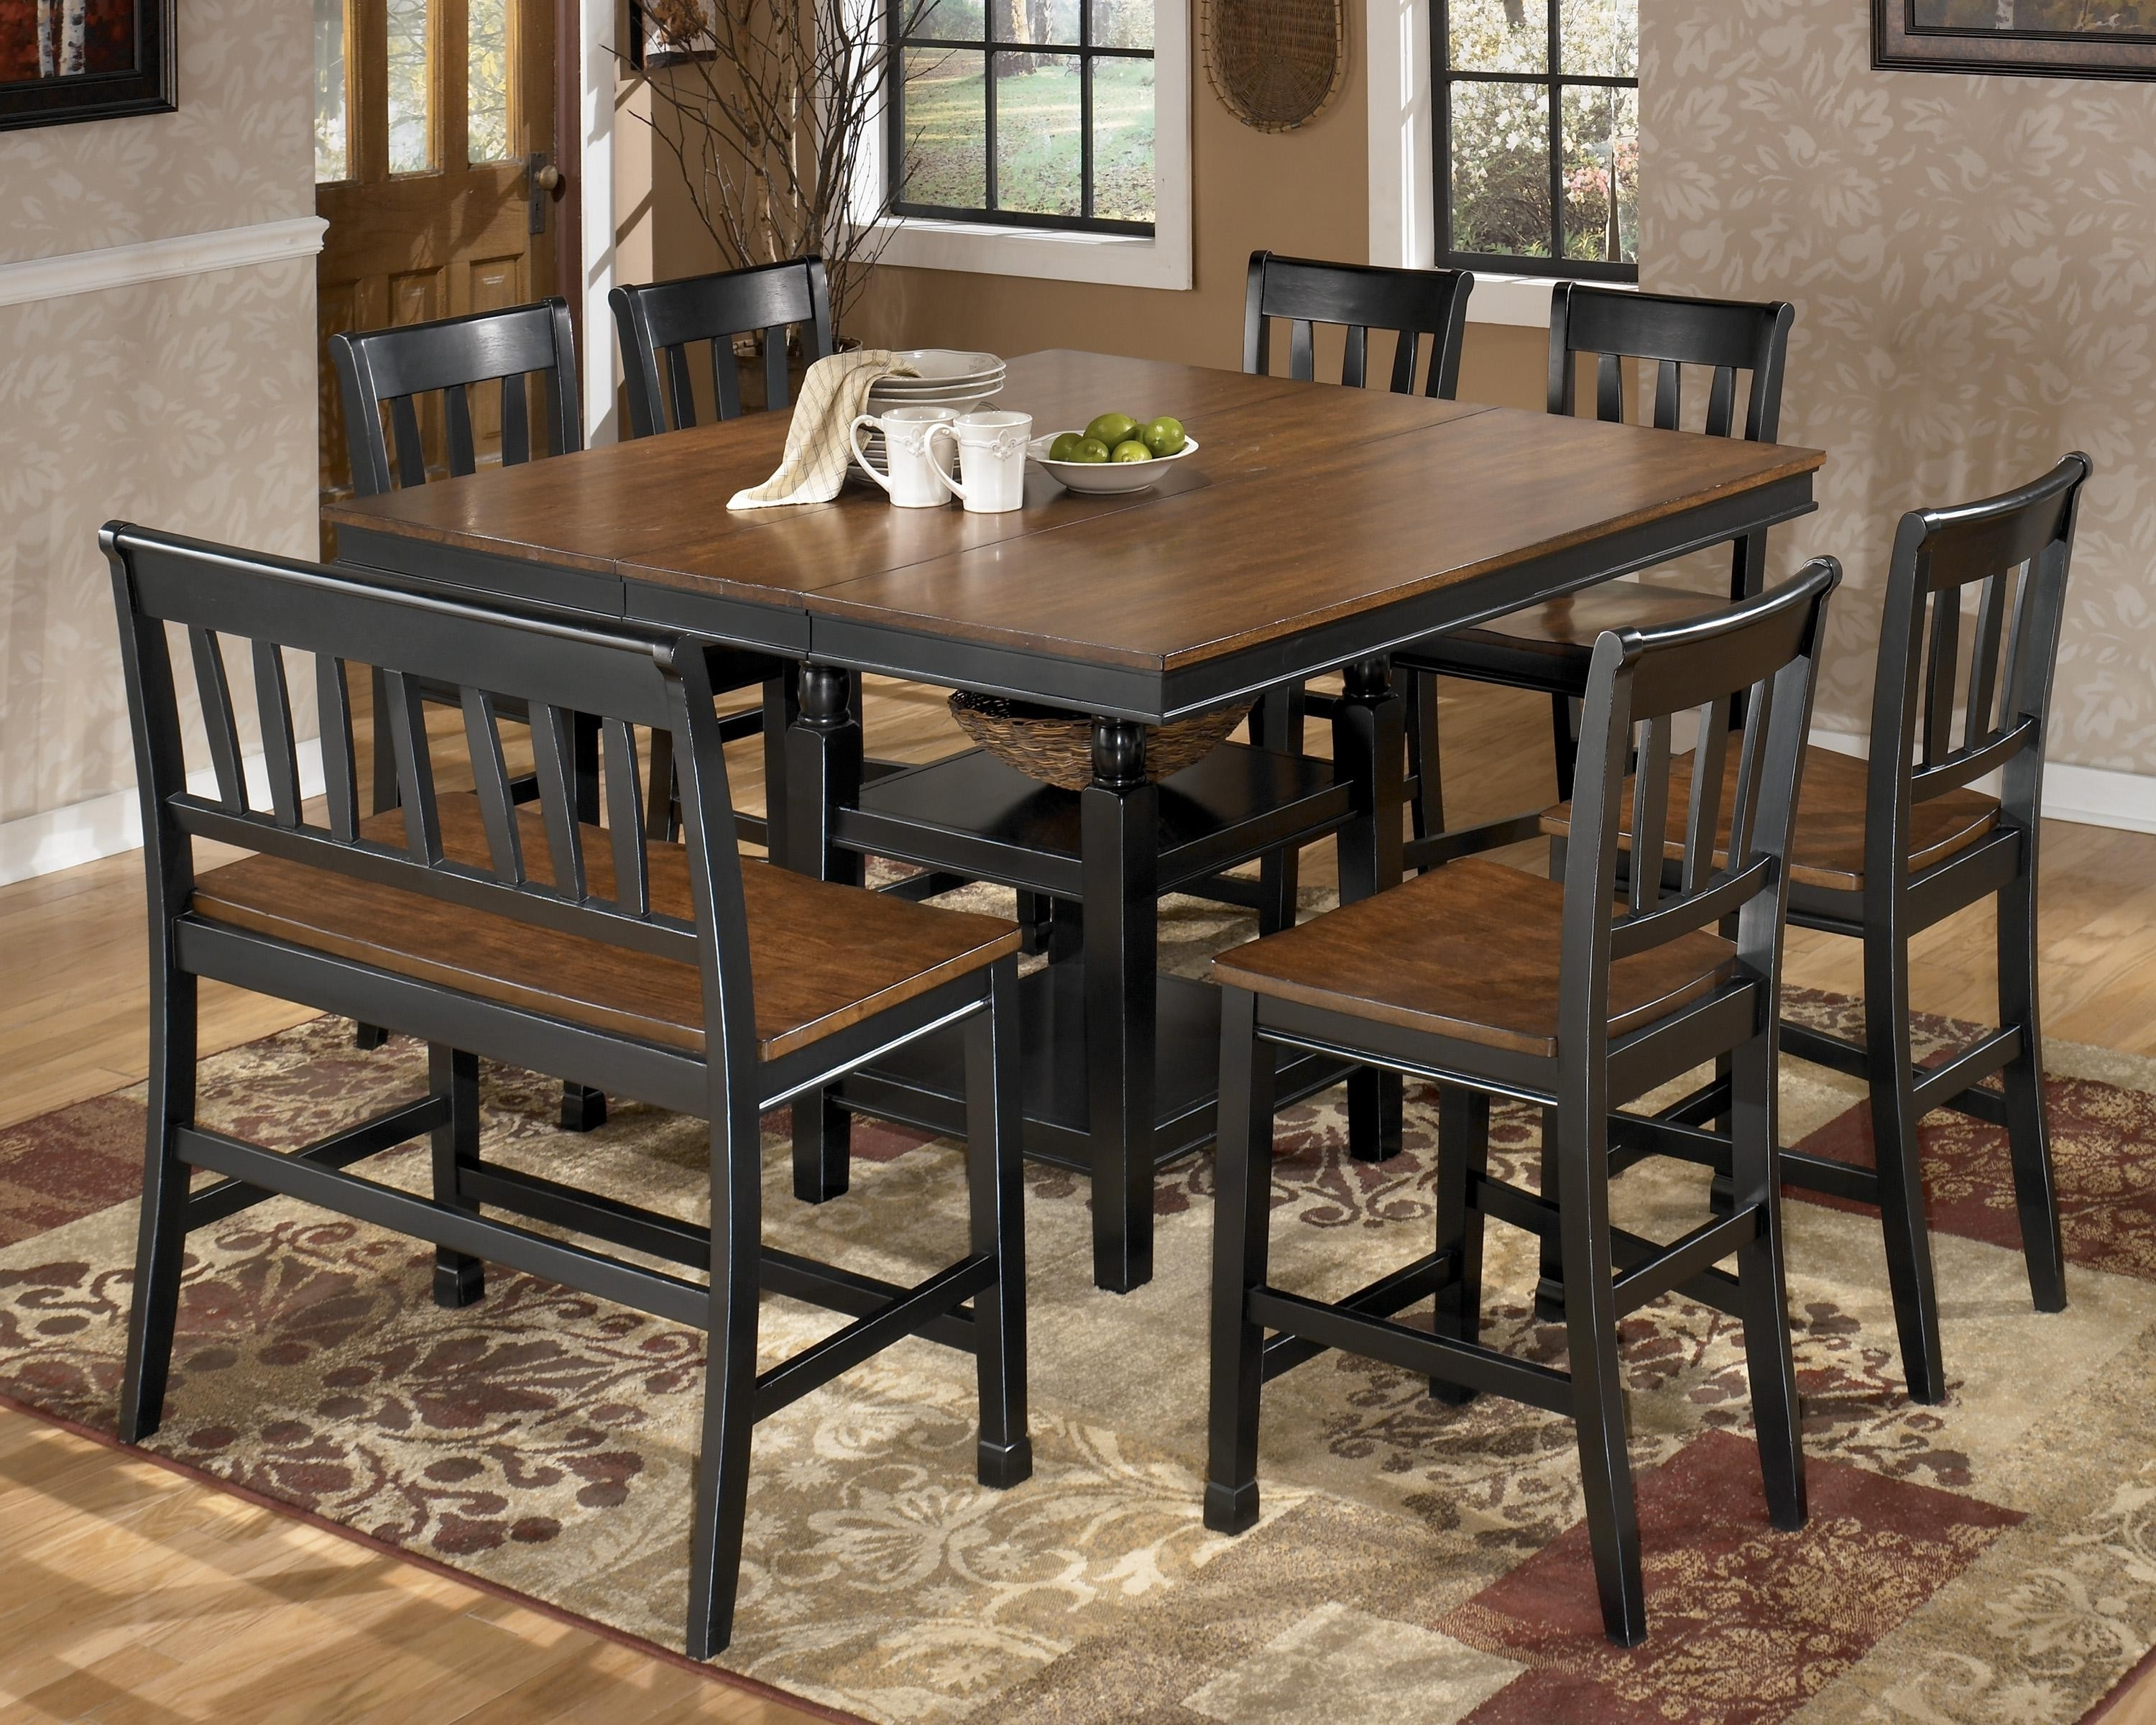 Solid Oak Dining Tables And 8 Chairs With Regard To Latest Solid Oak Dining Room Table And 8 Chairs New Ashley Counter Height (View 21 of 25)